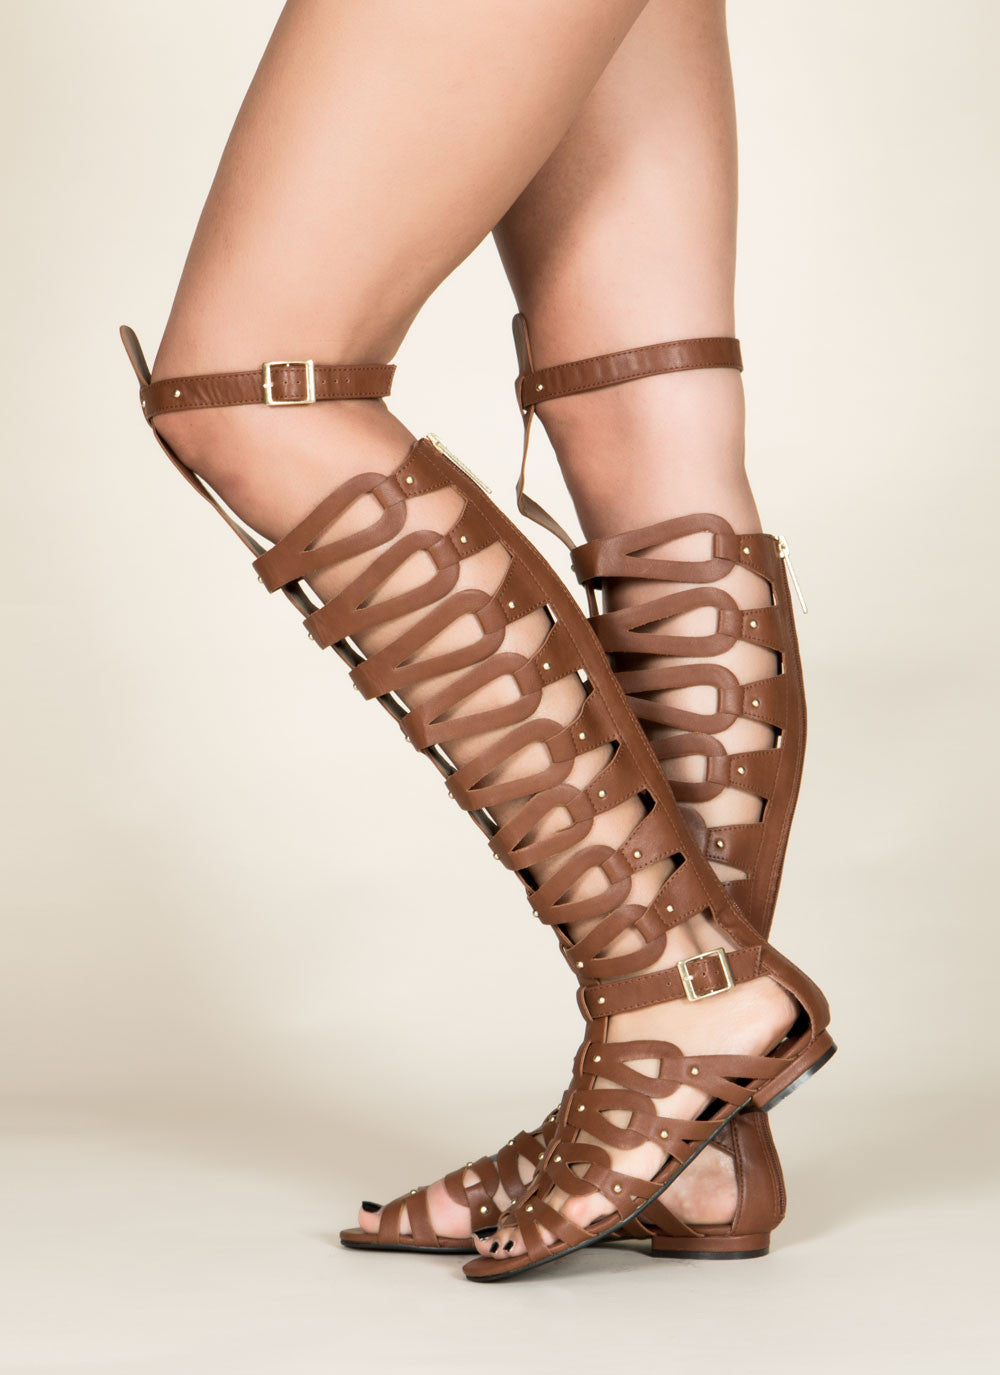 Gladiator Sandals , Shoes - Fashion Trend LA, Fashion Trend LA  - 2